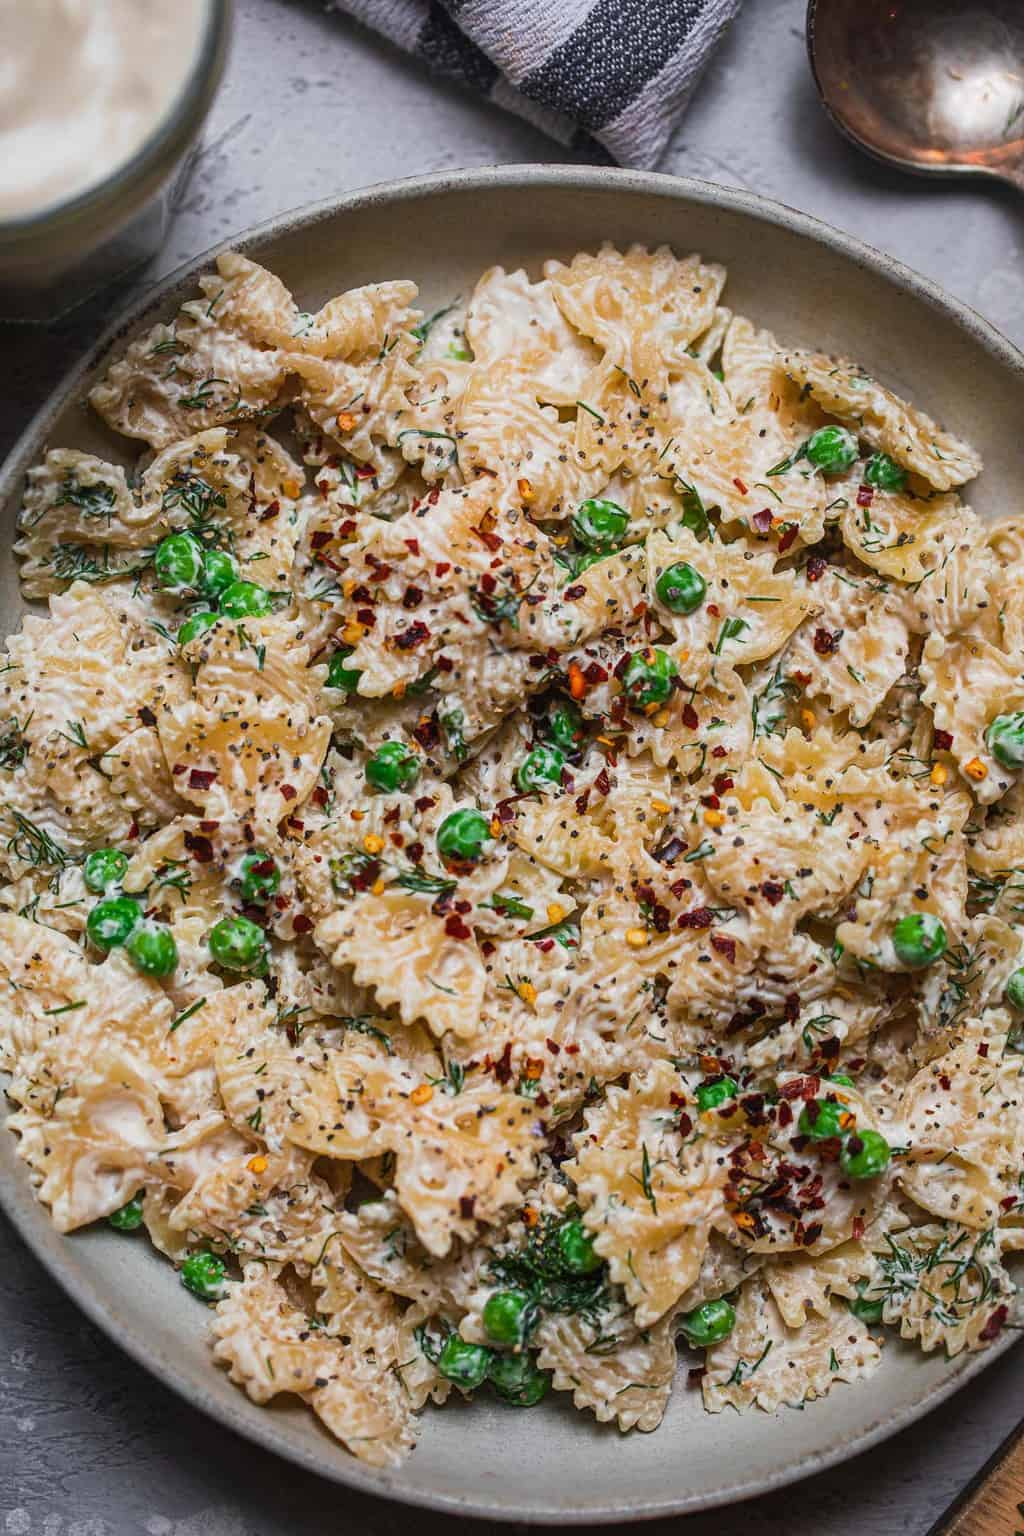 Pasta with vegan sour cream